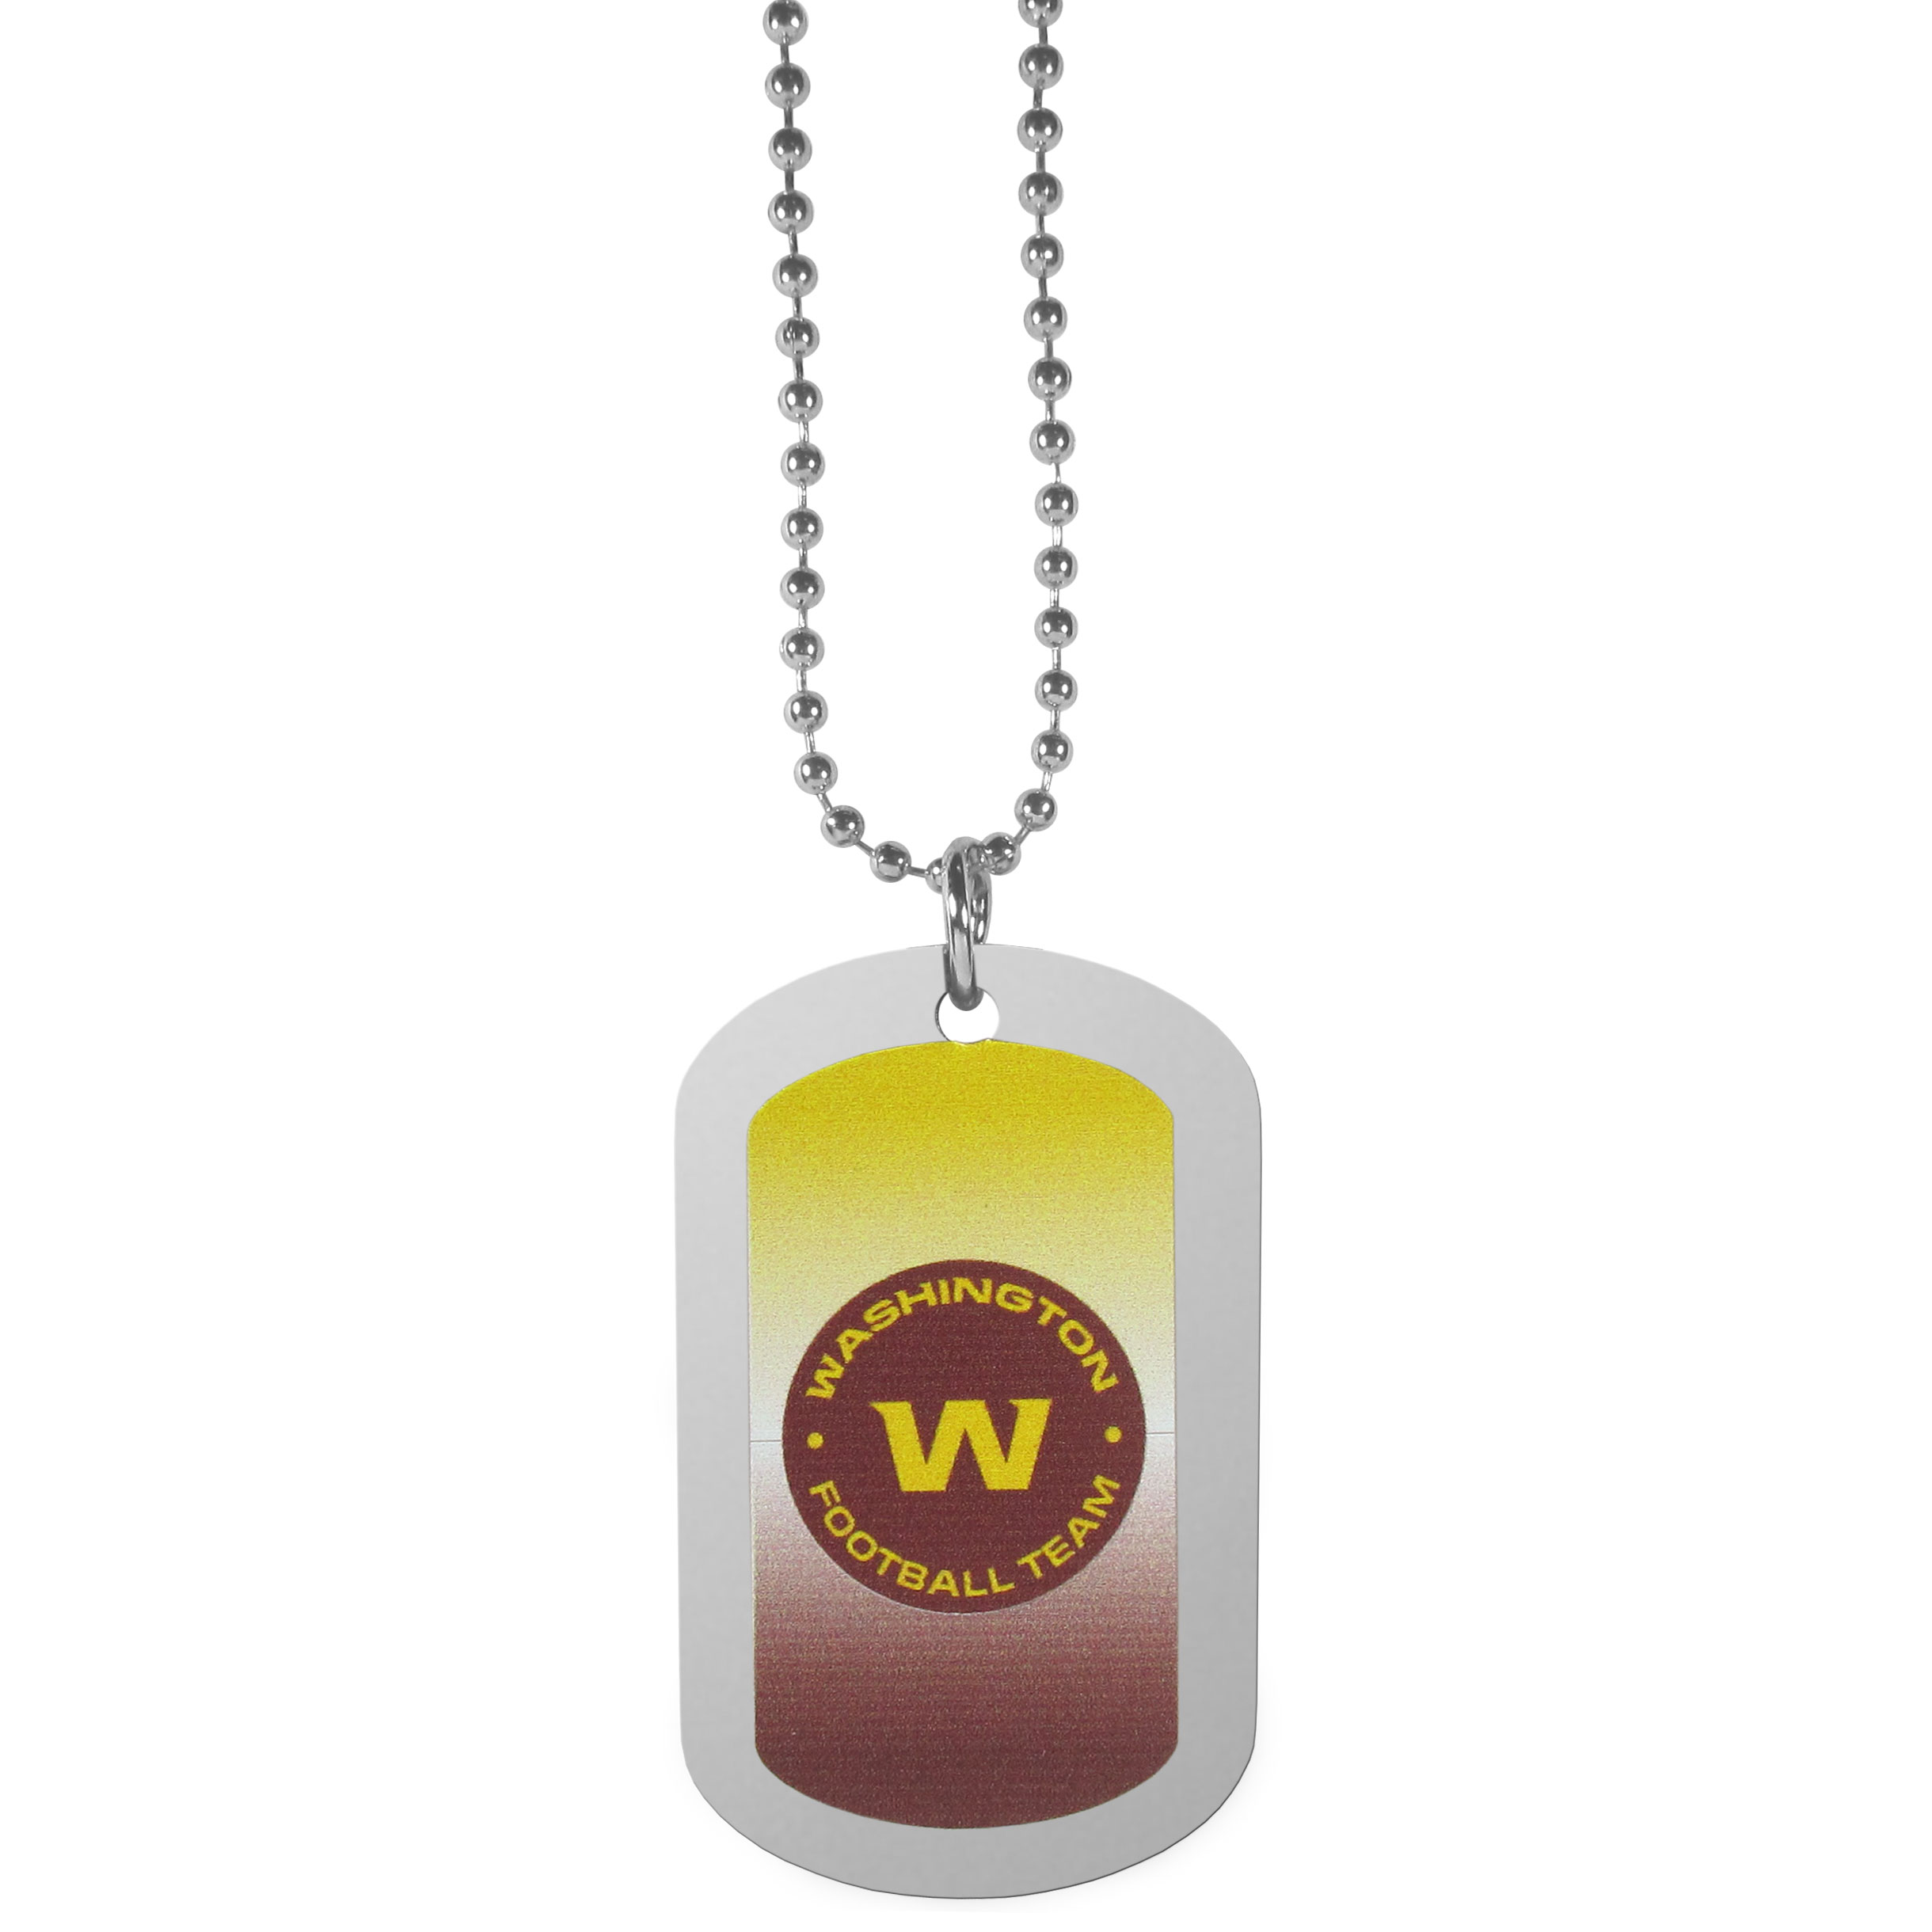 Washington Redskins Team Tag Necklace - Dog tag necklaces are a fashion statement that is here to stay. The sporty version of the classic tag features a gradient print in team colors featuring a full color team logo over a high polish tag to create a bold and sporty look. The tag comes on a 26 inch ball chain with a ball and joint clasp. Any Washington Redskins would be proud to wear this attractive fashion accessory.